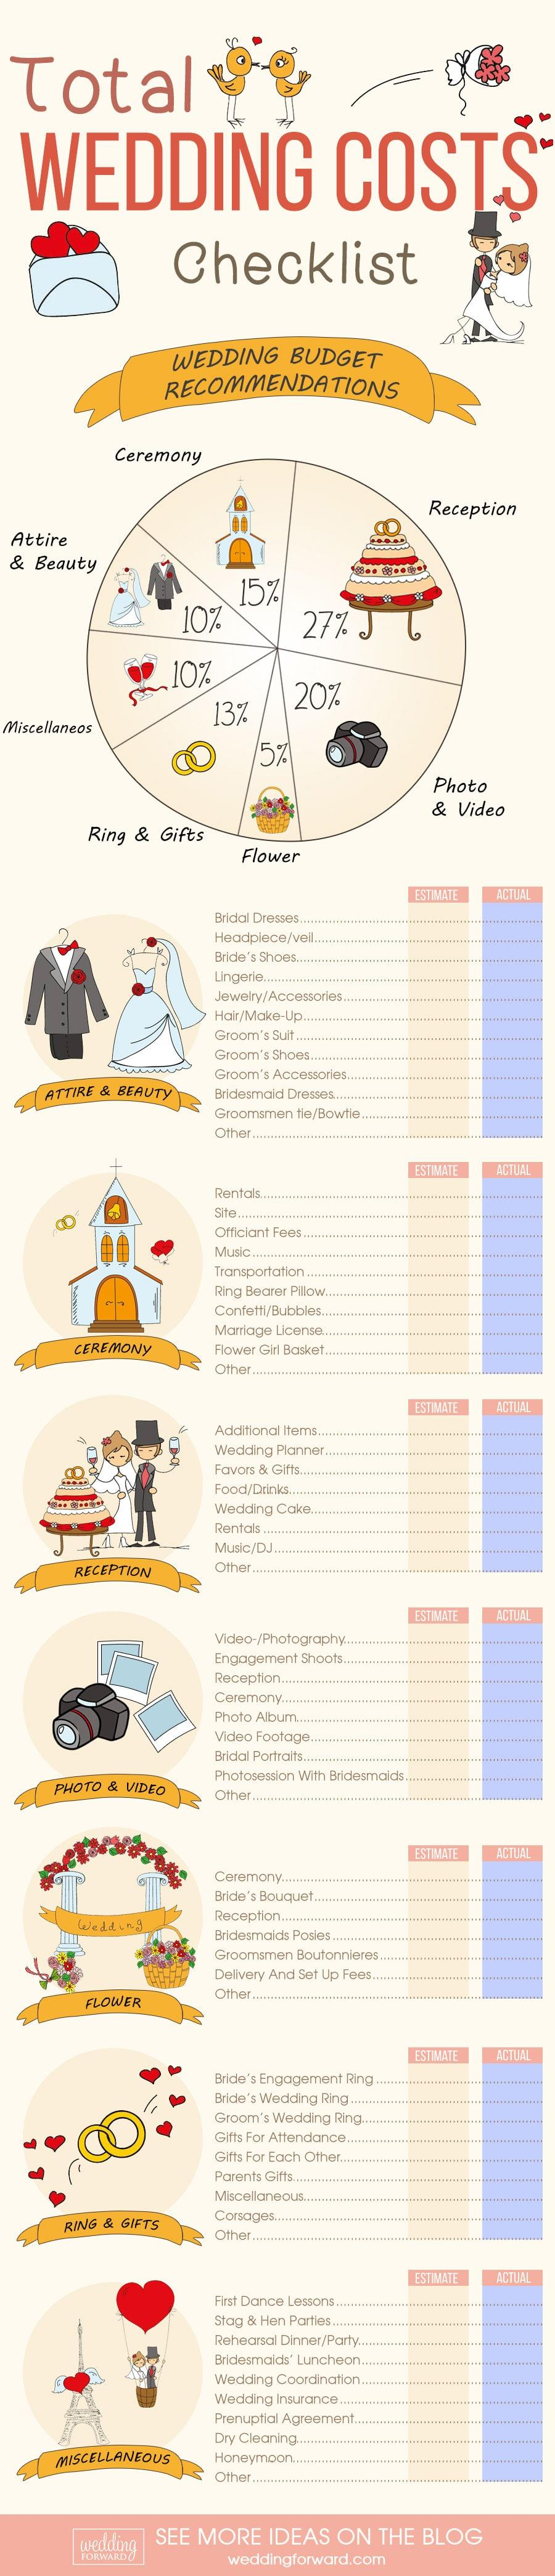 Infographic Total Wedding Costs Checklist